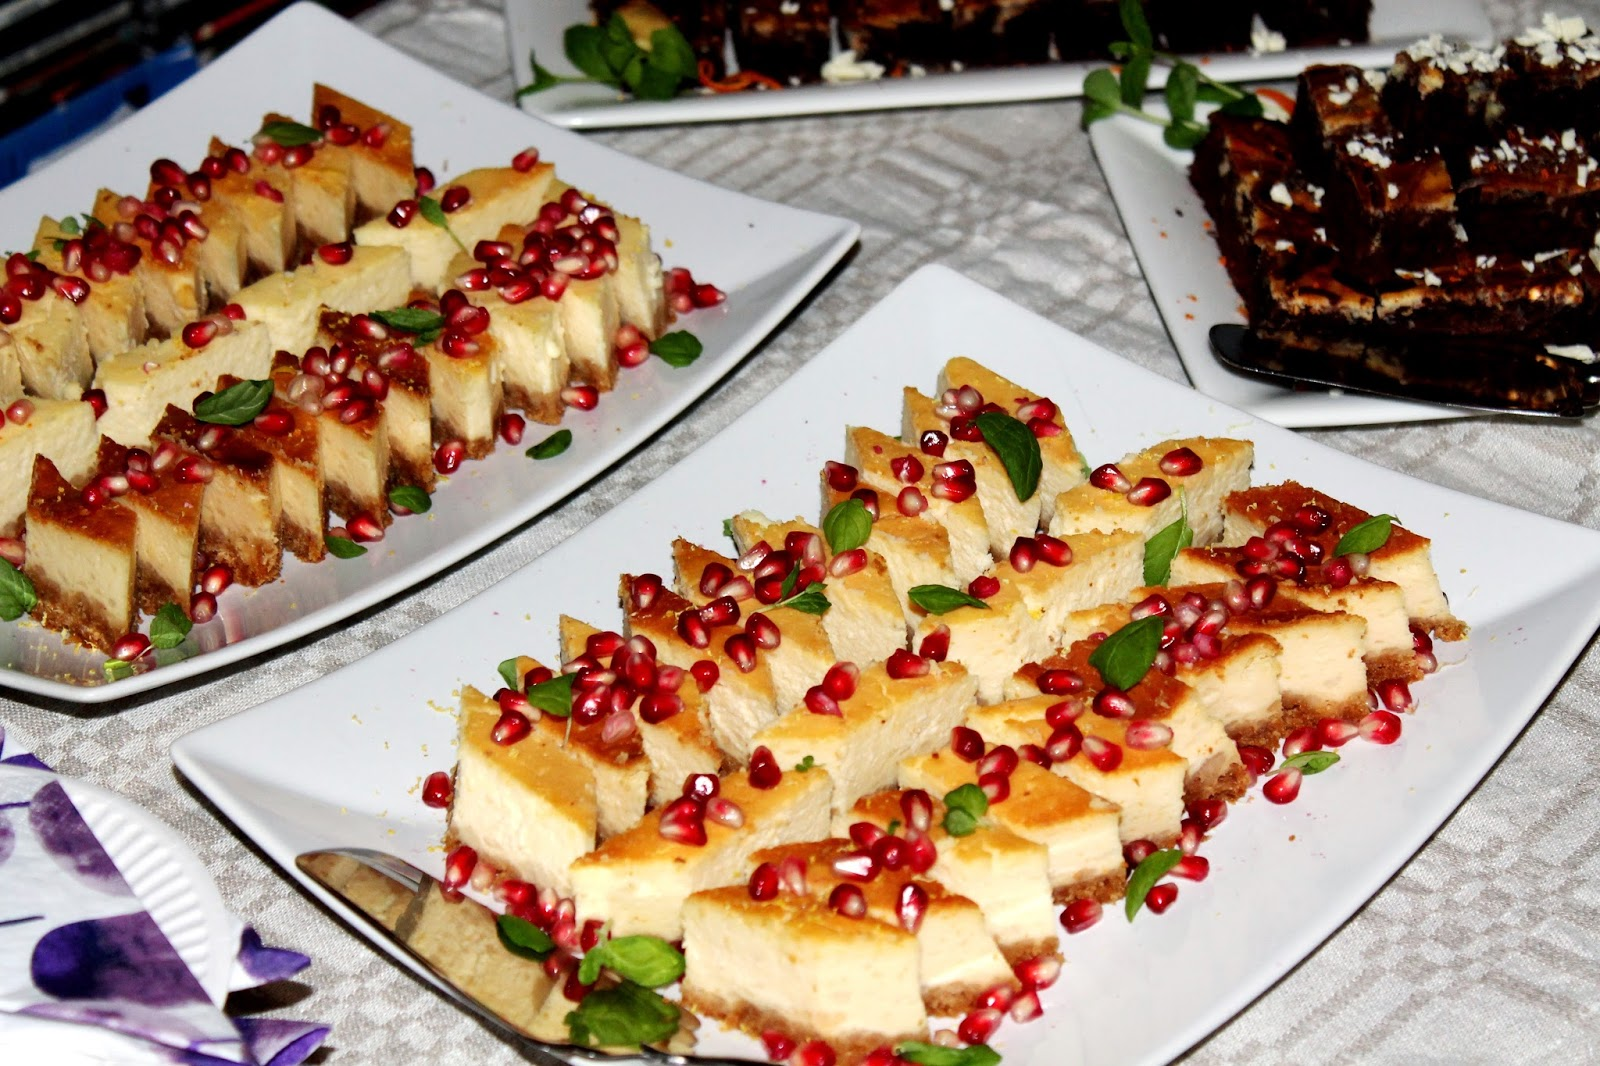 beautiful party food presentation, cheesecake